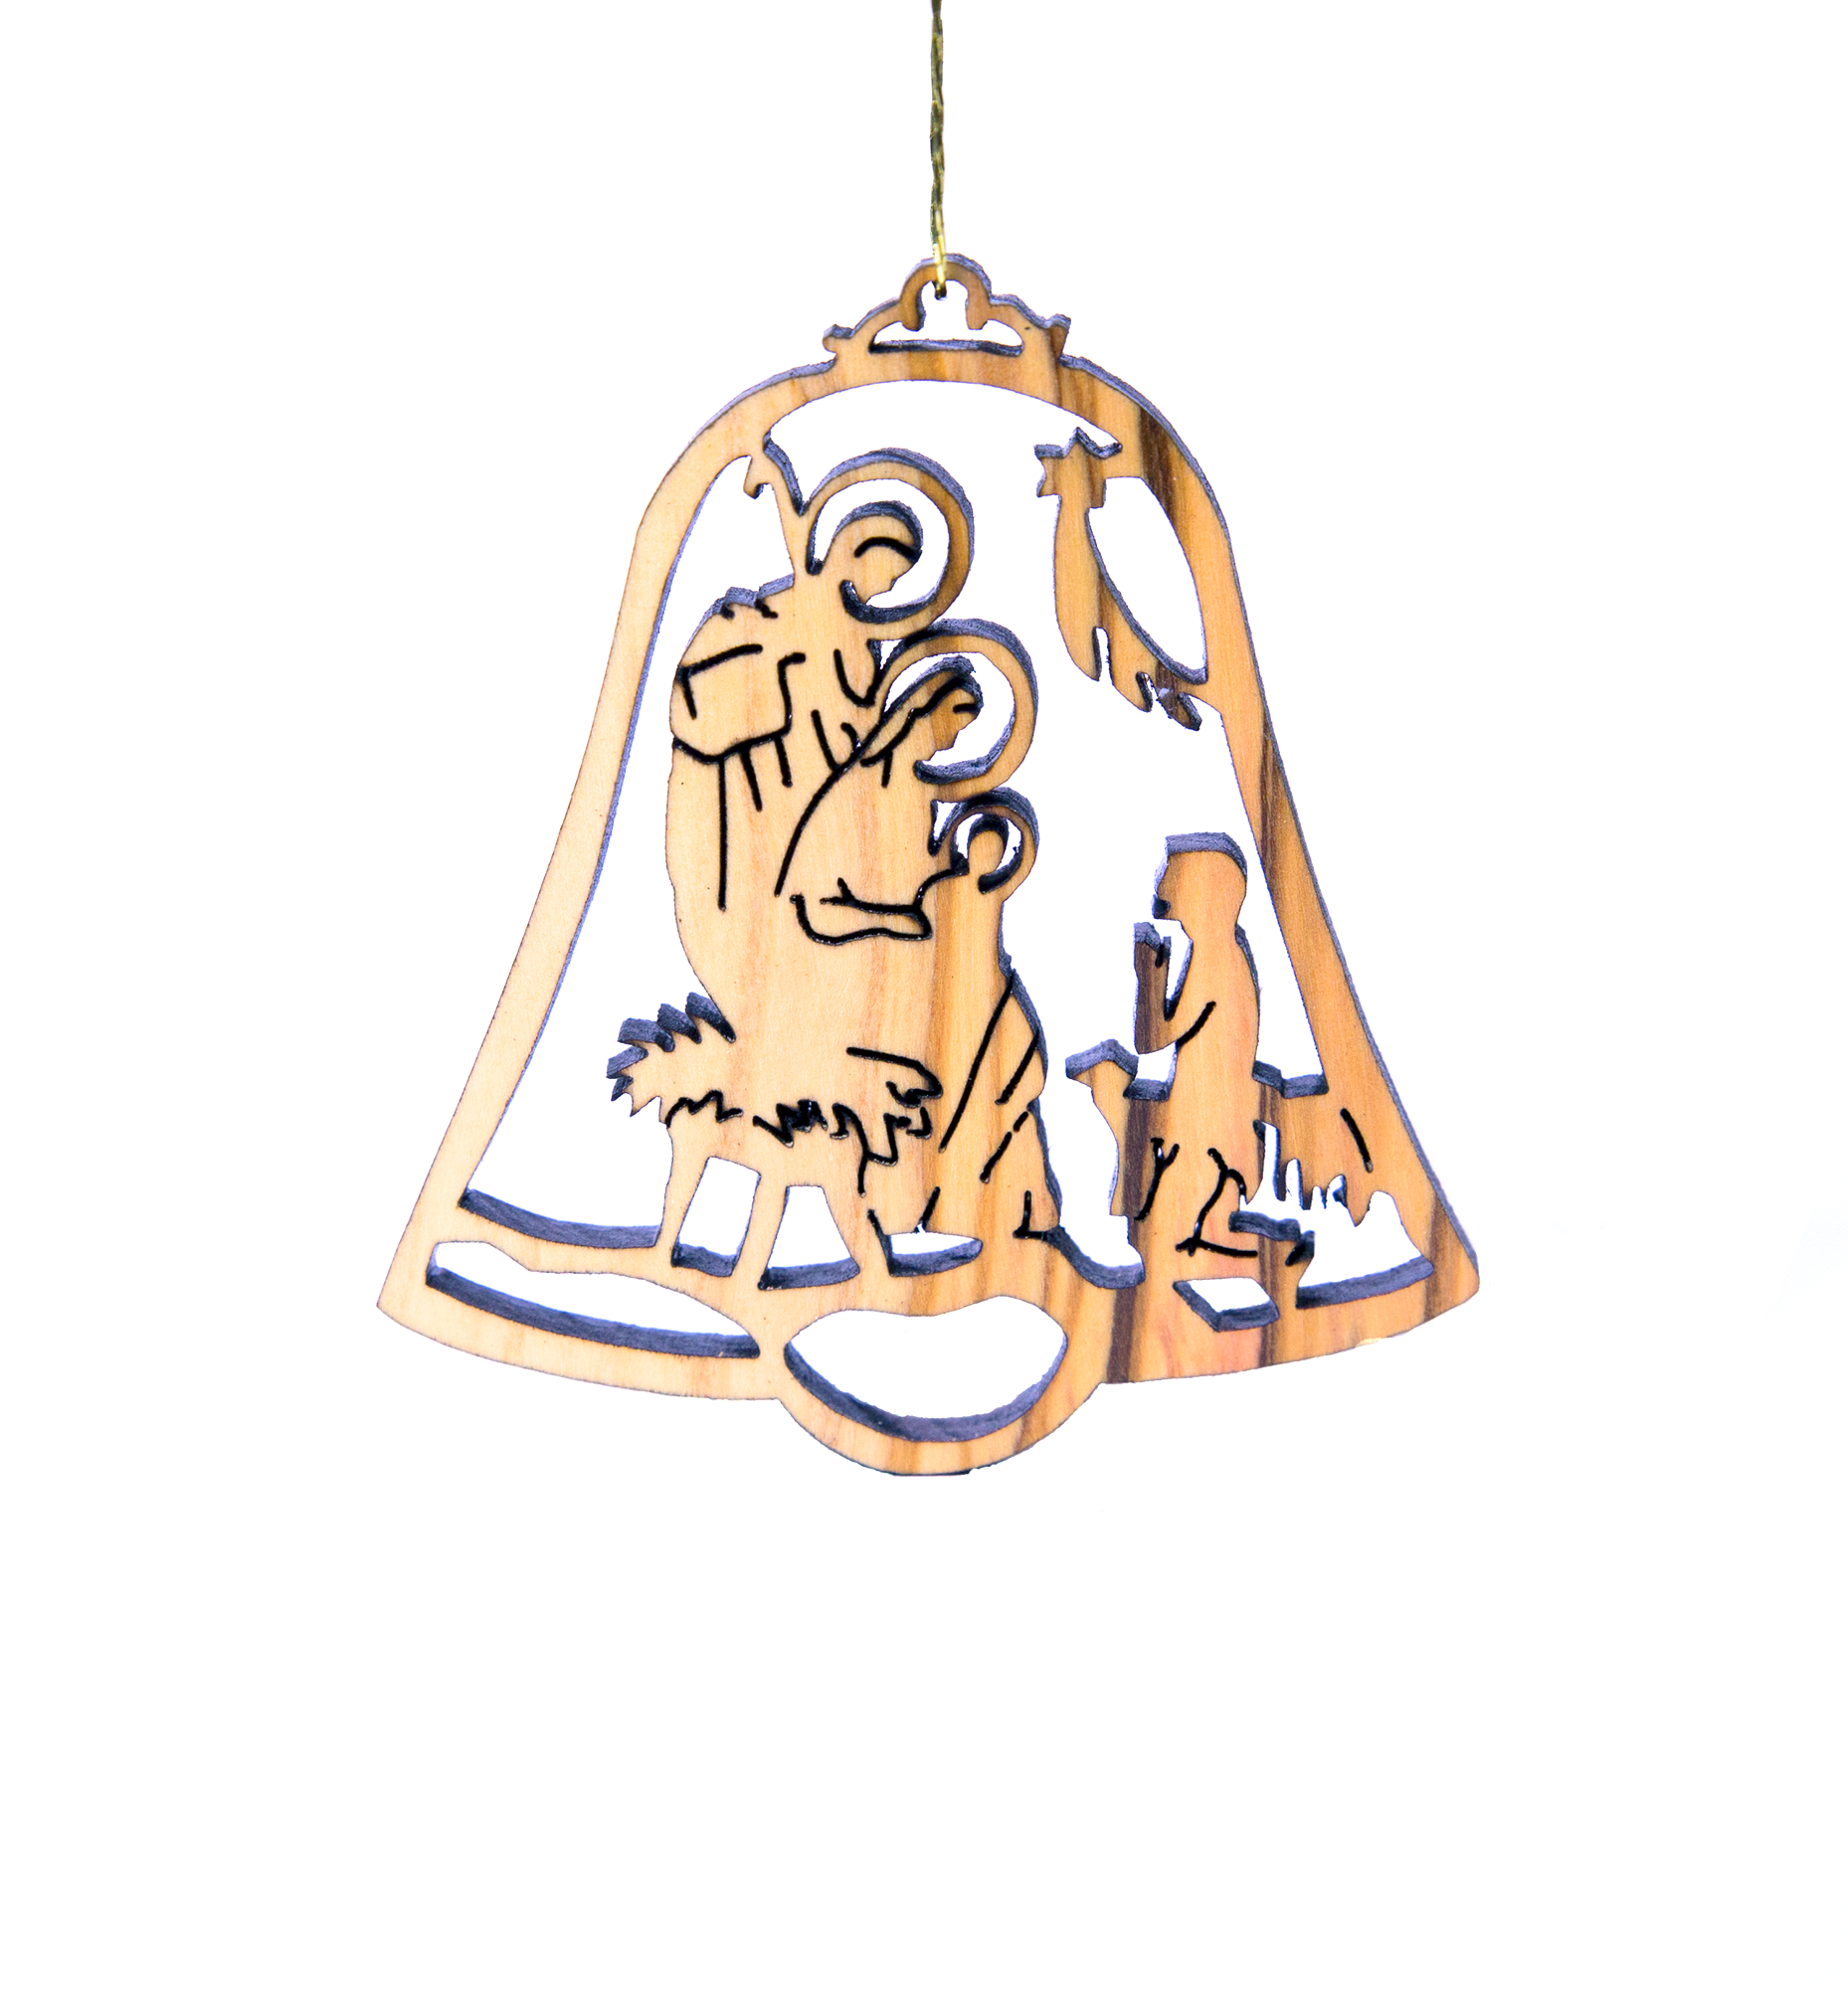 Laser Engraved Christmas Ornaments - Olive wood | ICEJ Store